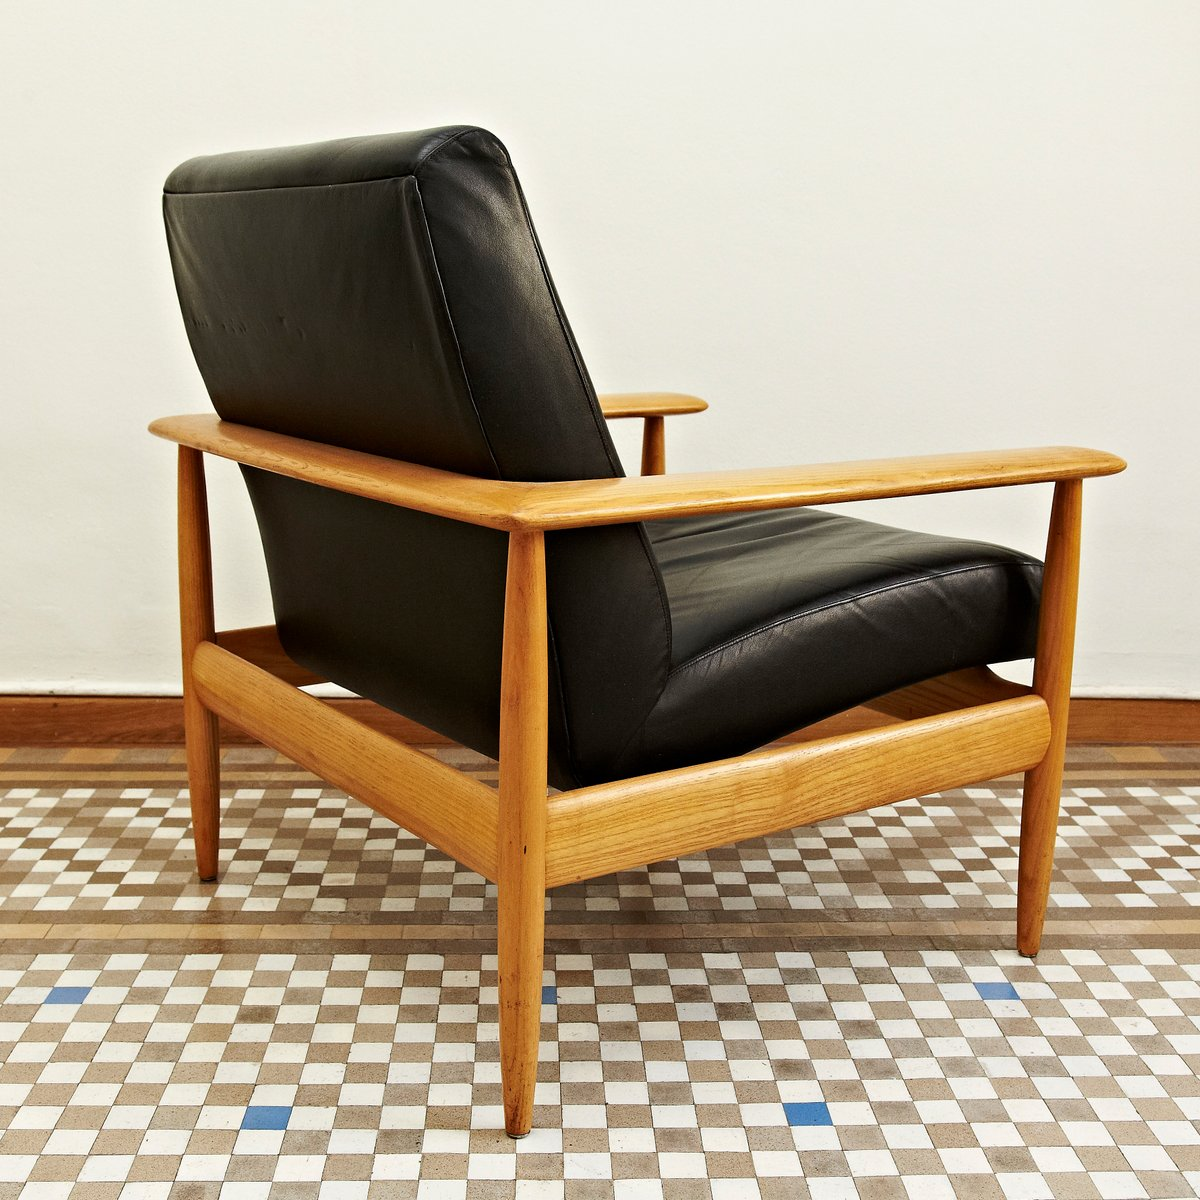 z chair for sale swing 1 year old mid century scandinavian easy 1950s at pamono